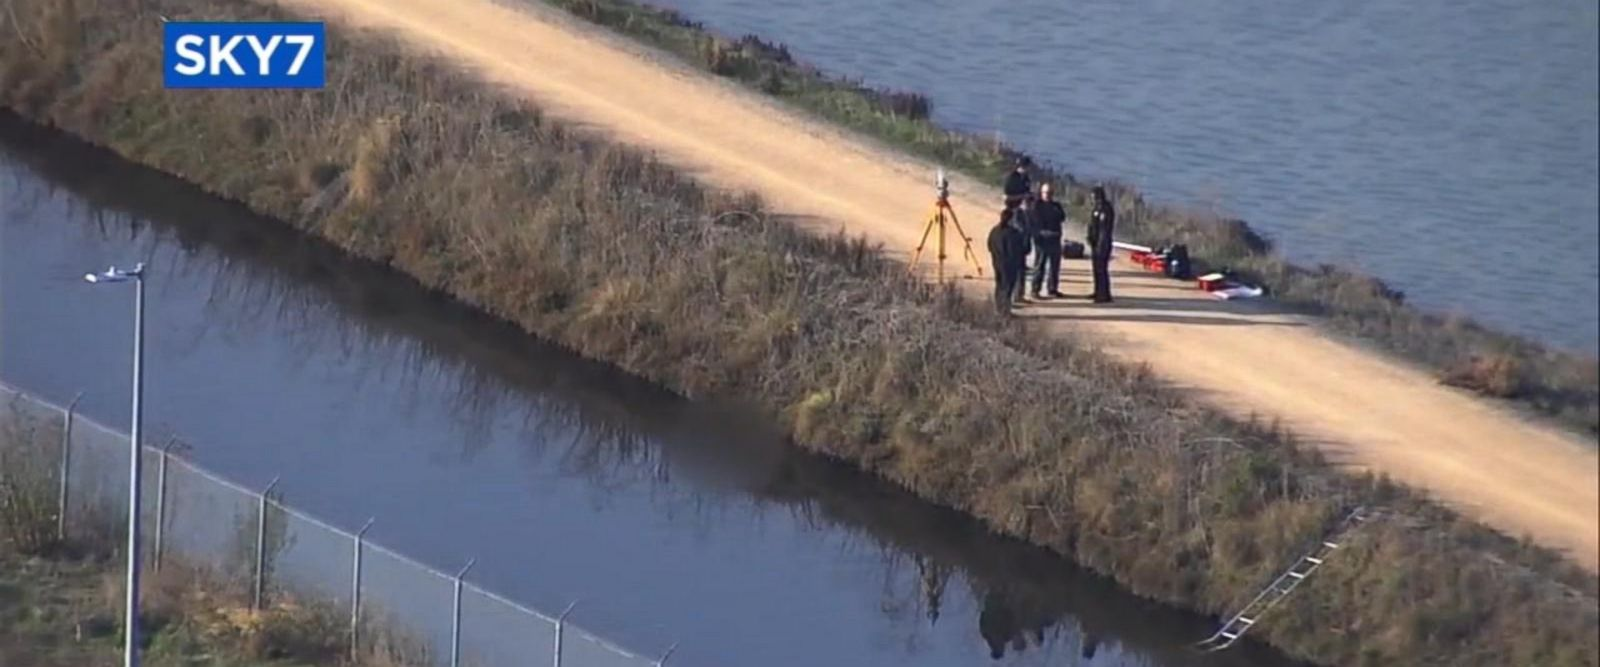 VIDEO: The body of 23-year-old Chuchu Ma was found in water along the San Francisco Bay trail in Sunnyvale, California.